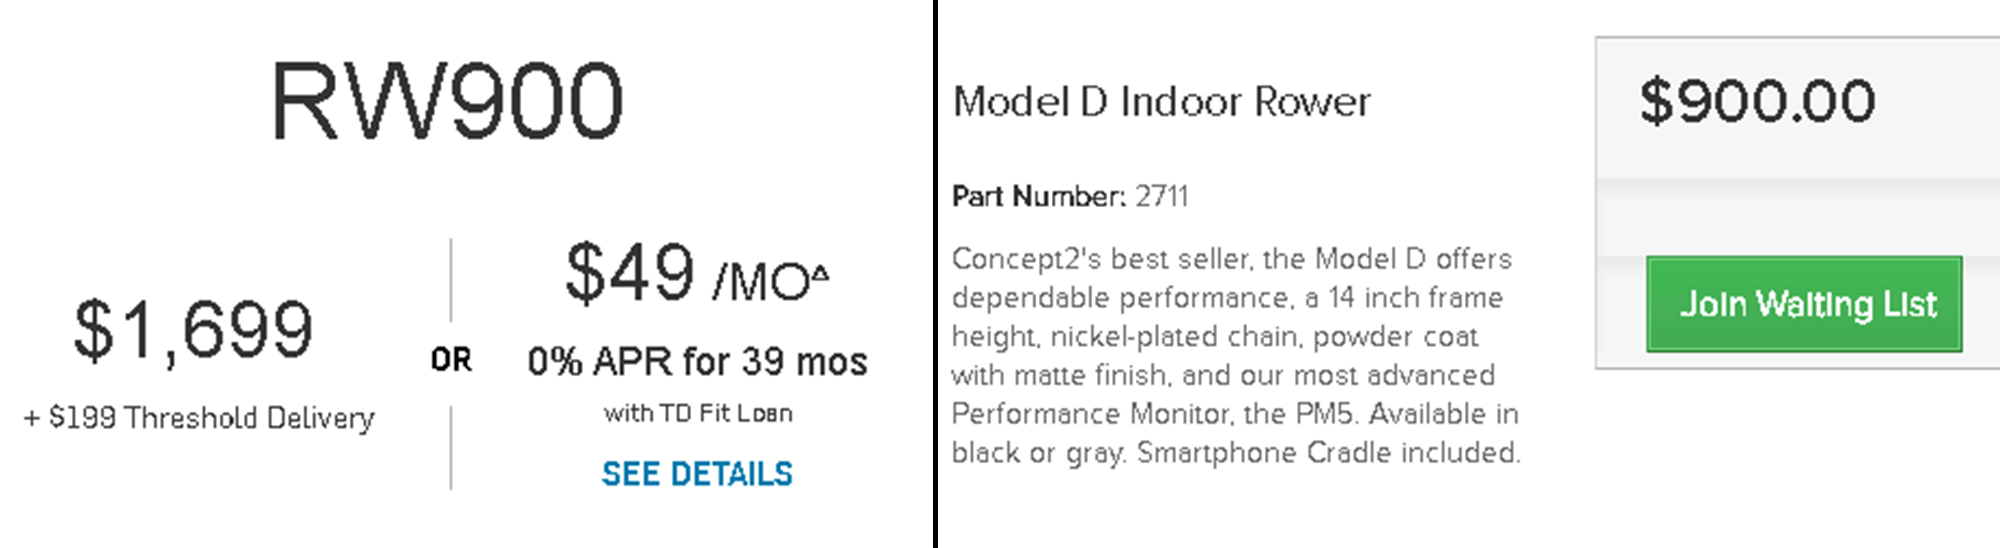 Comparing the prices of the NordicTrack RW900 the Concept 2 Model D